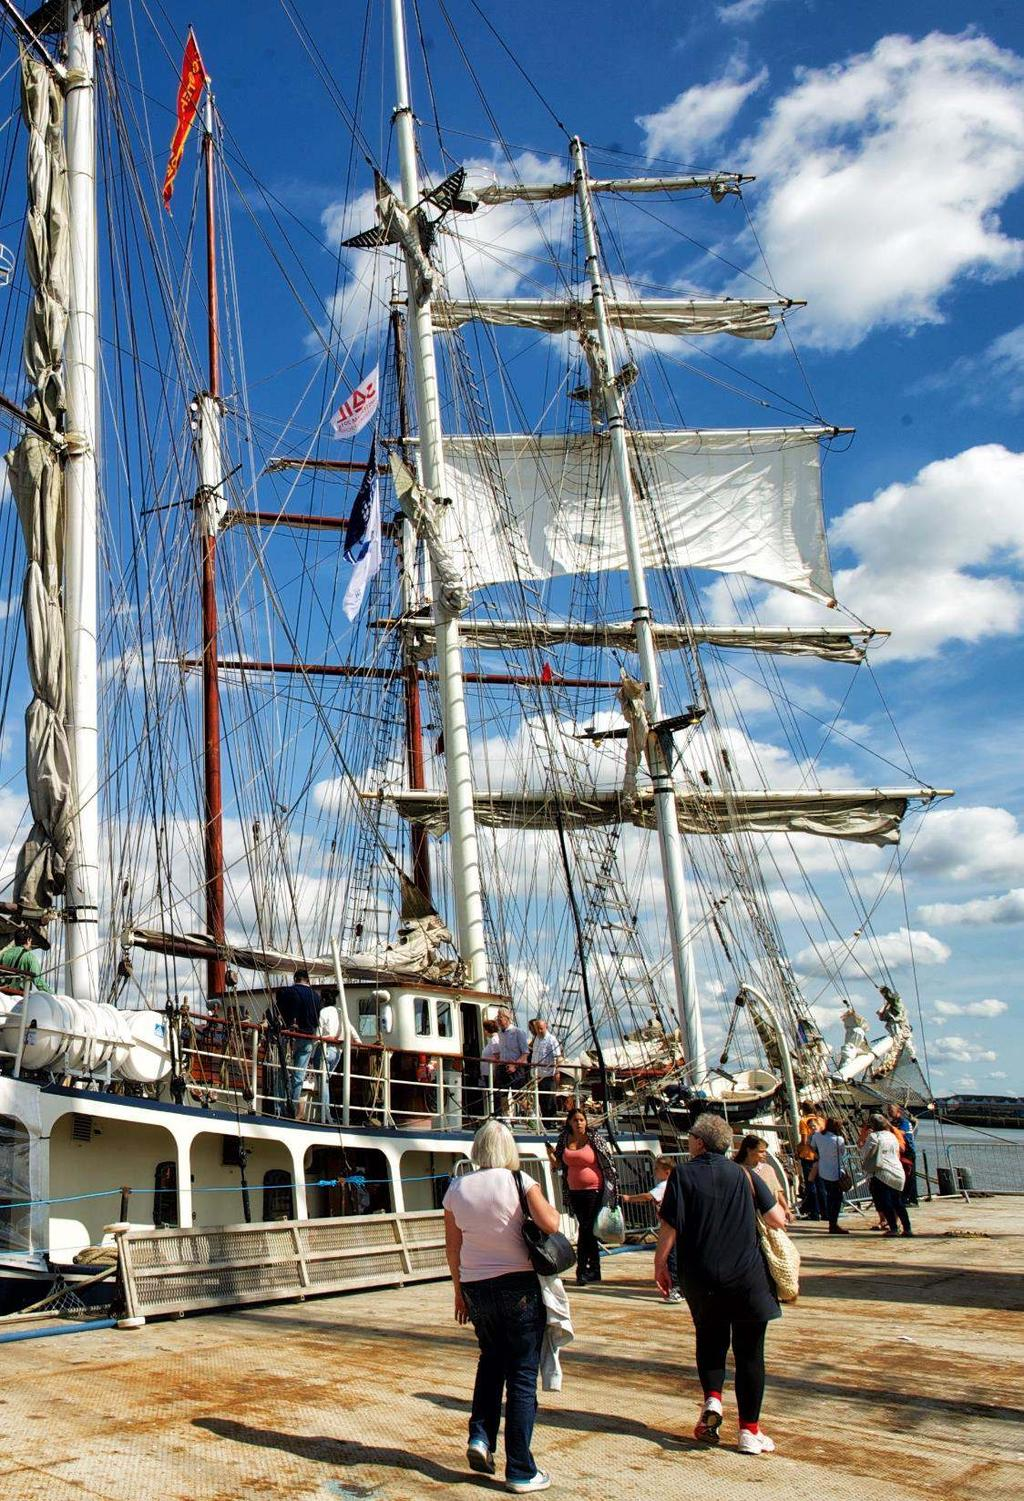 Visits to Moored Tall Ships Greenwich Boat shuttles from Greenwich to visit a Tall Ship Depart every 15 mins 1 hr visit including tour and opportunity to chat with crew Around 8 per person / 20